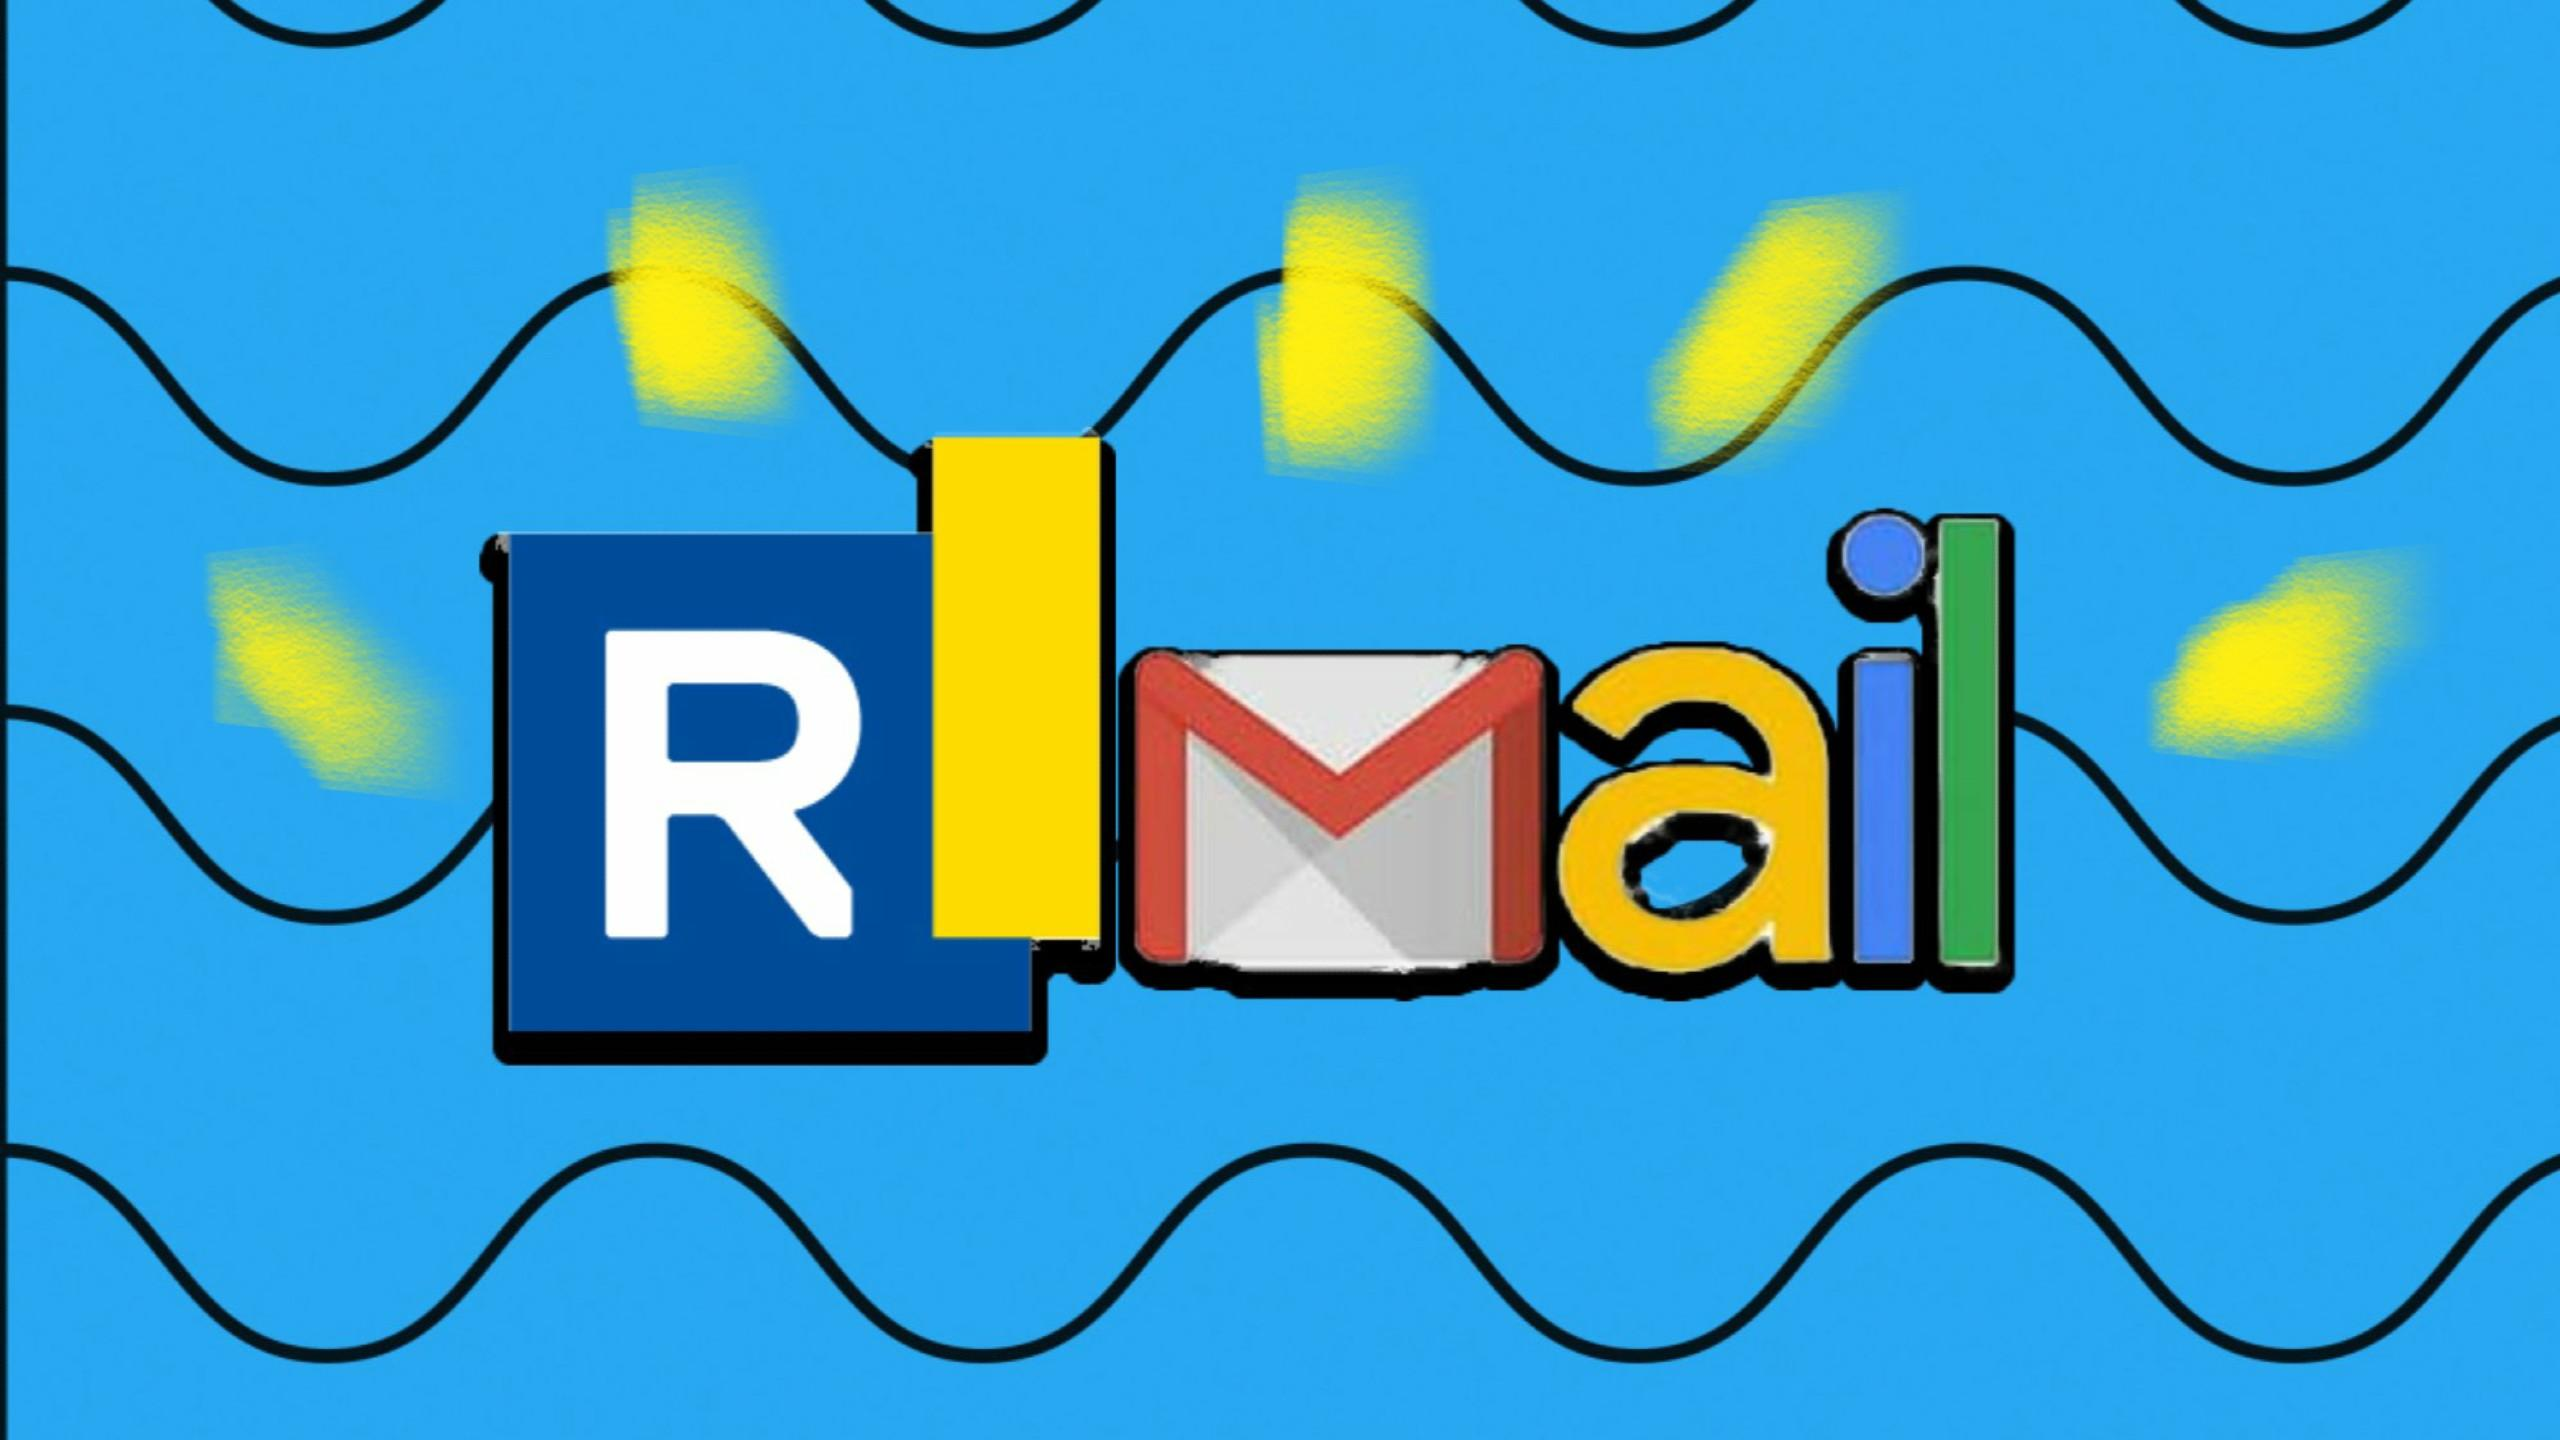 Email logo that spells 'RMail' in front of a blue wallpaper